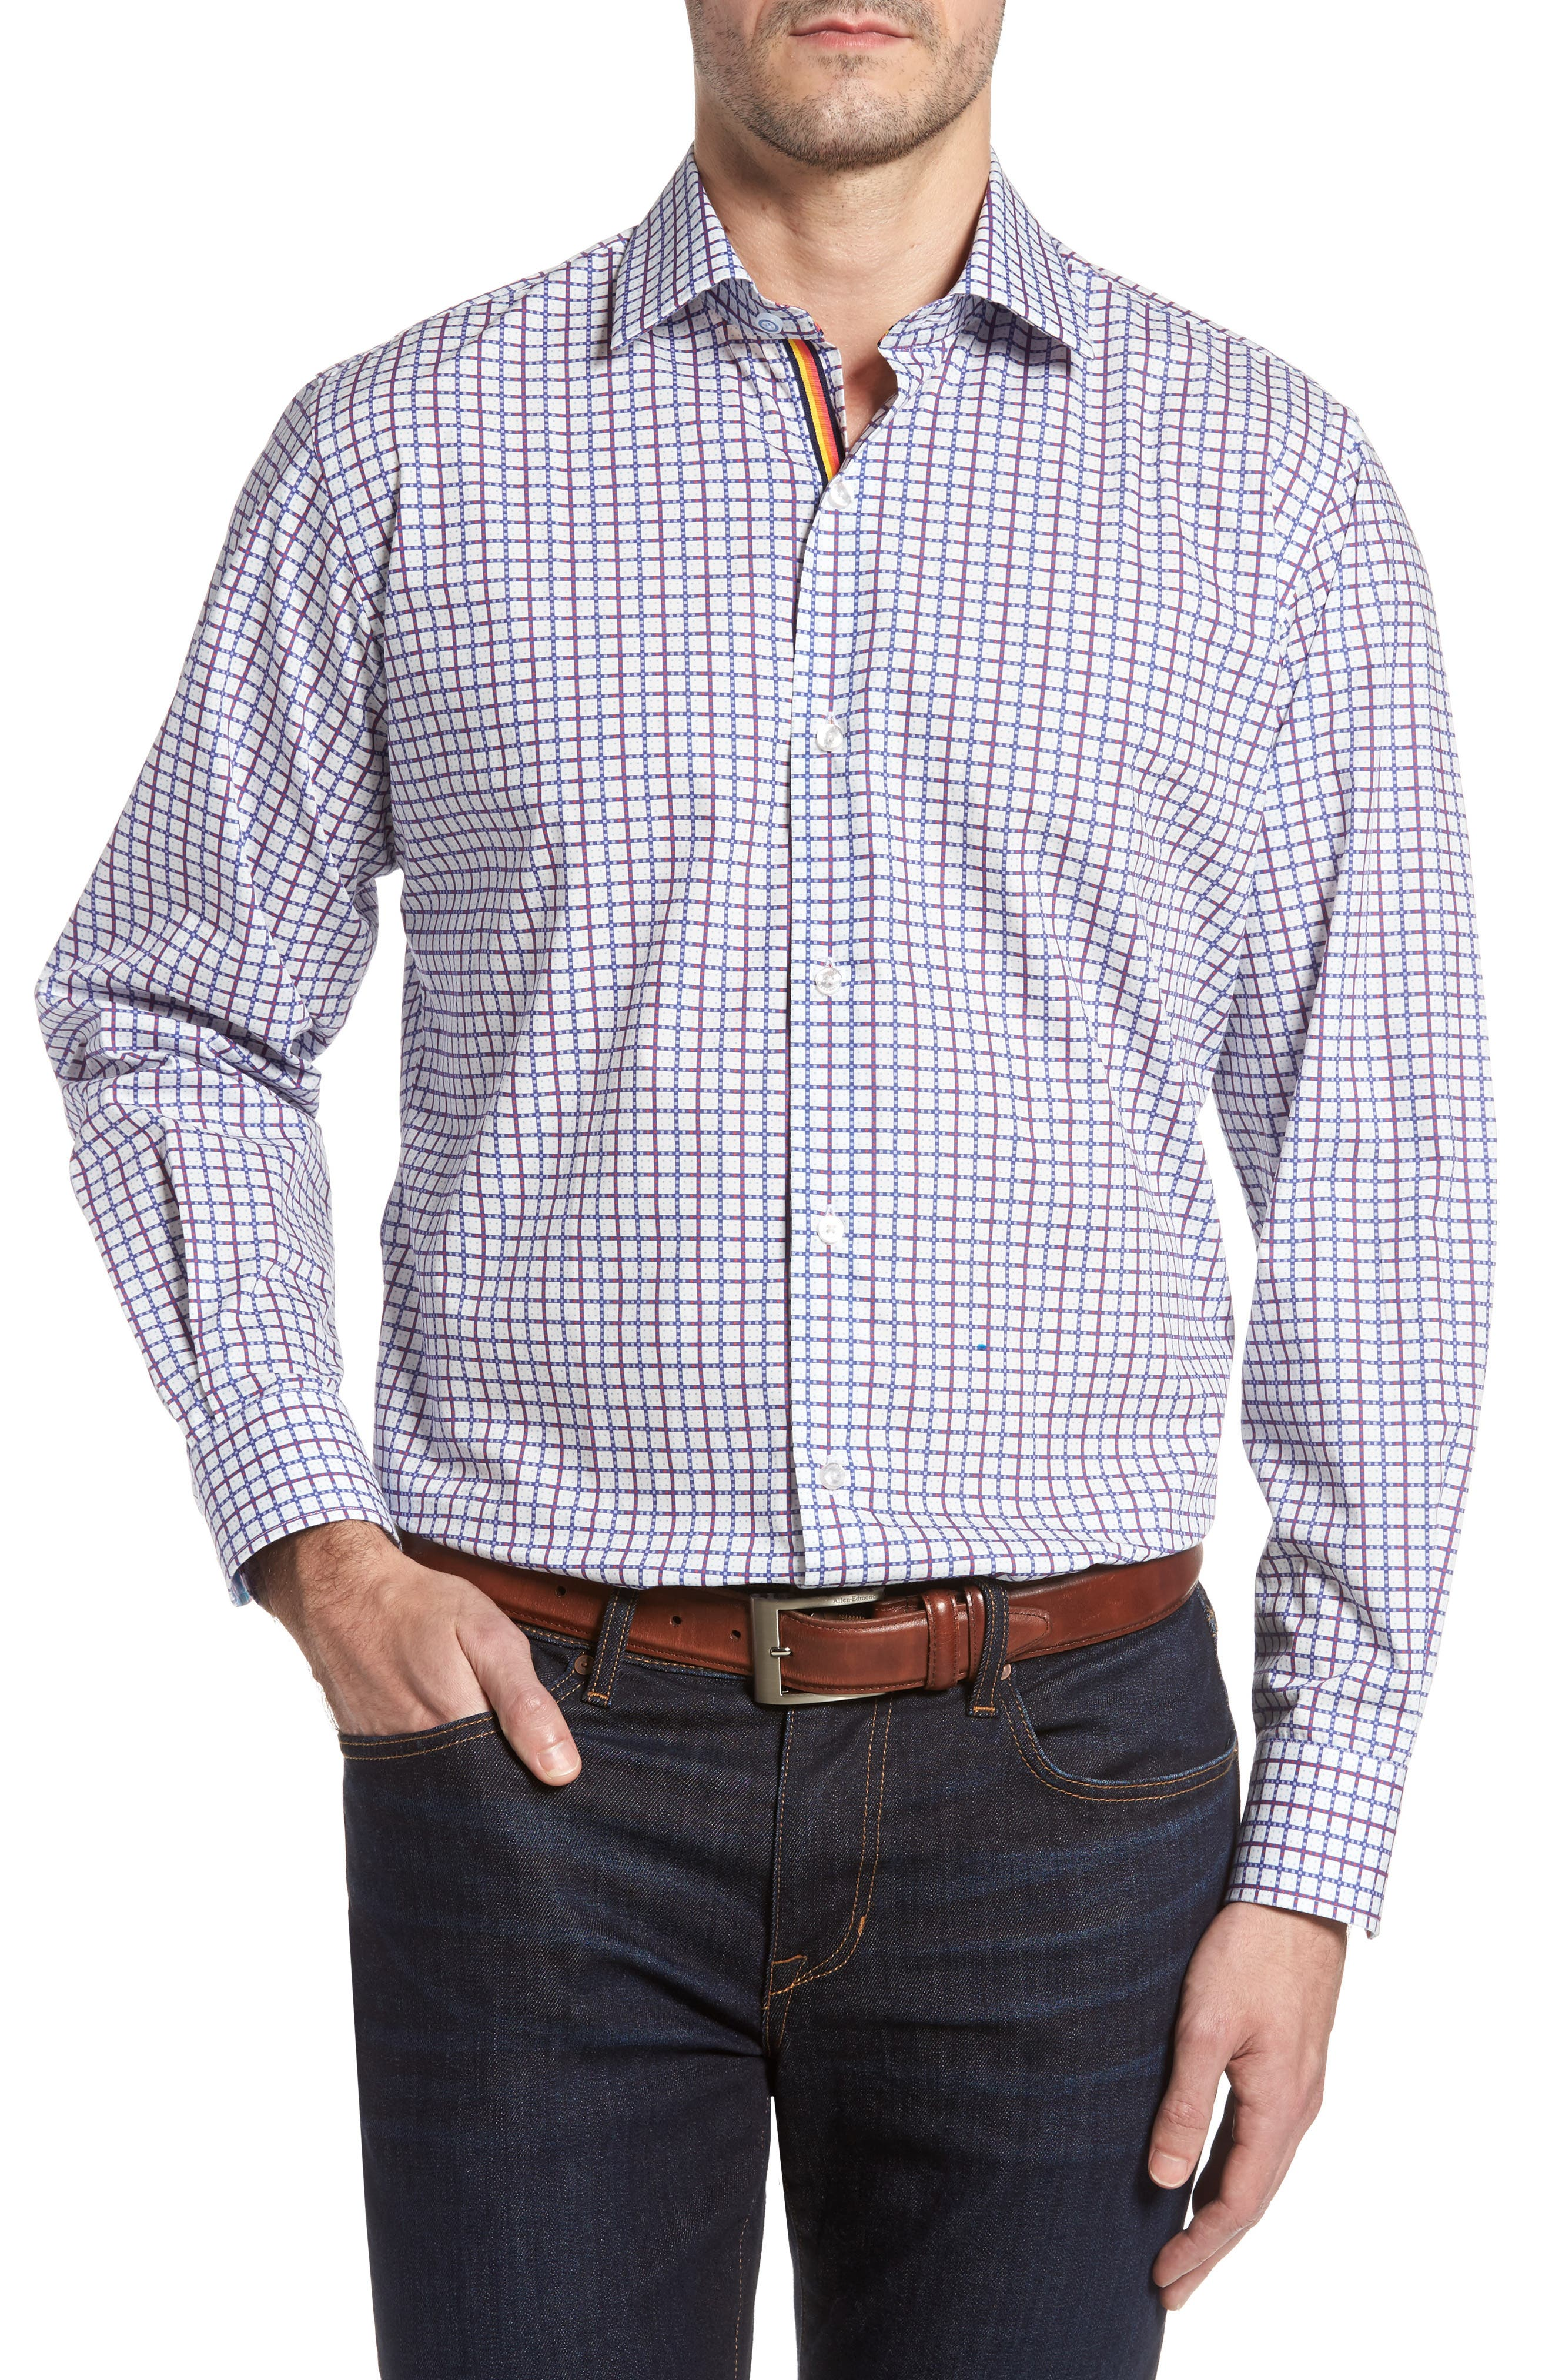 TailorByrd Magnolia Sport Shirt